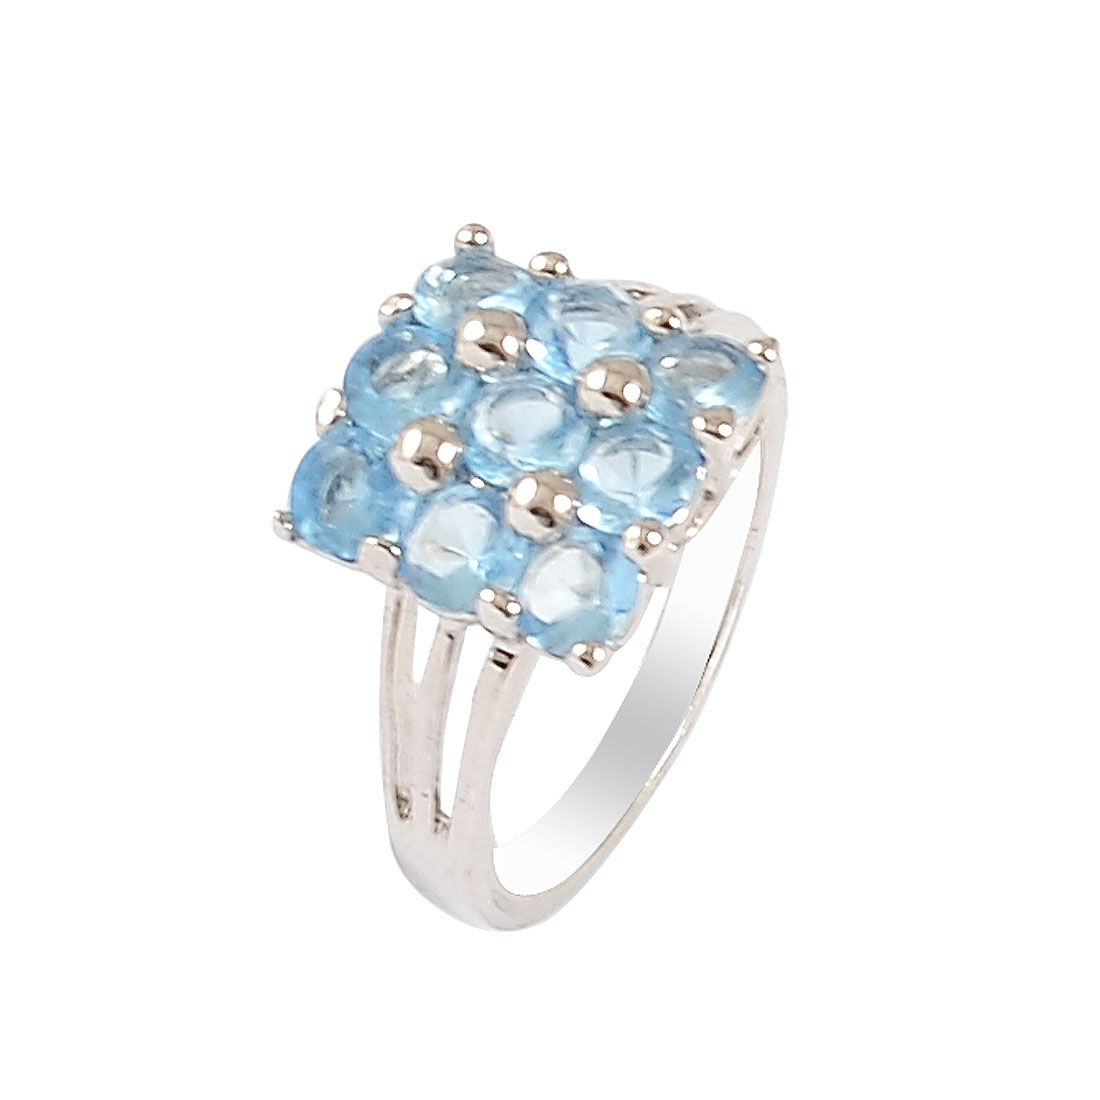 Light Blue Rhinestone Inlaid Silver Tone Finger Ring US 6 1/4 for Lady Ladies